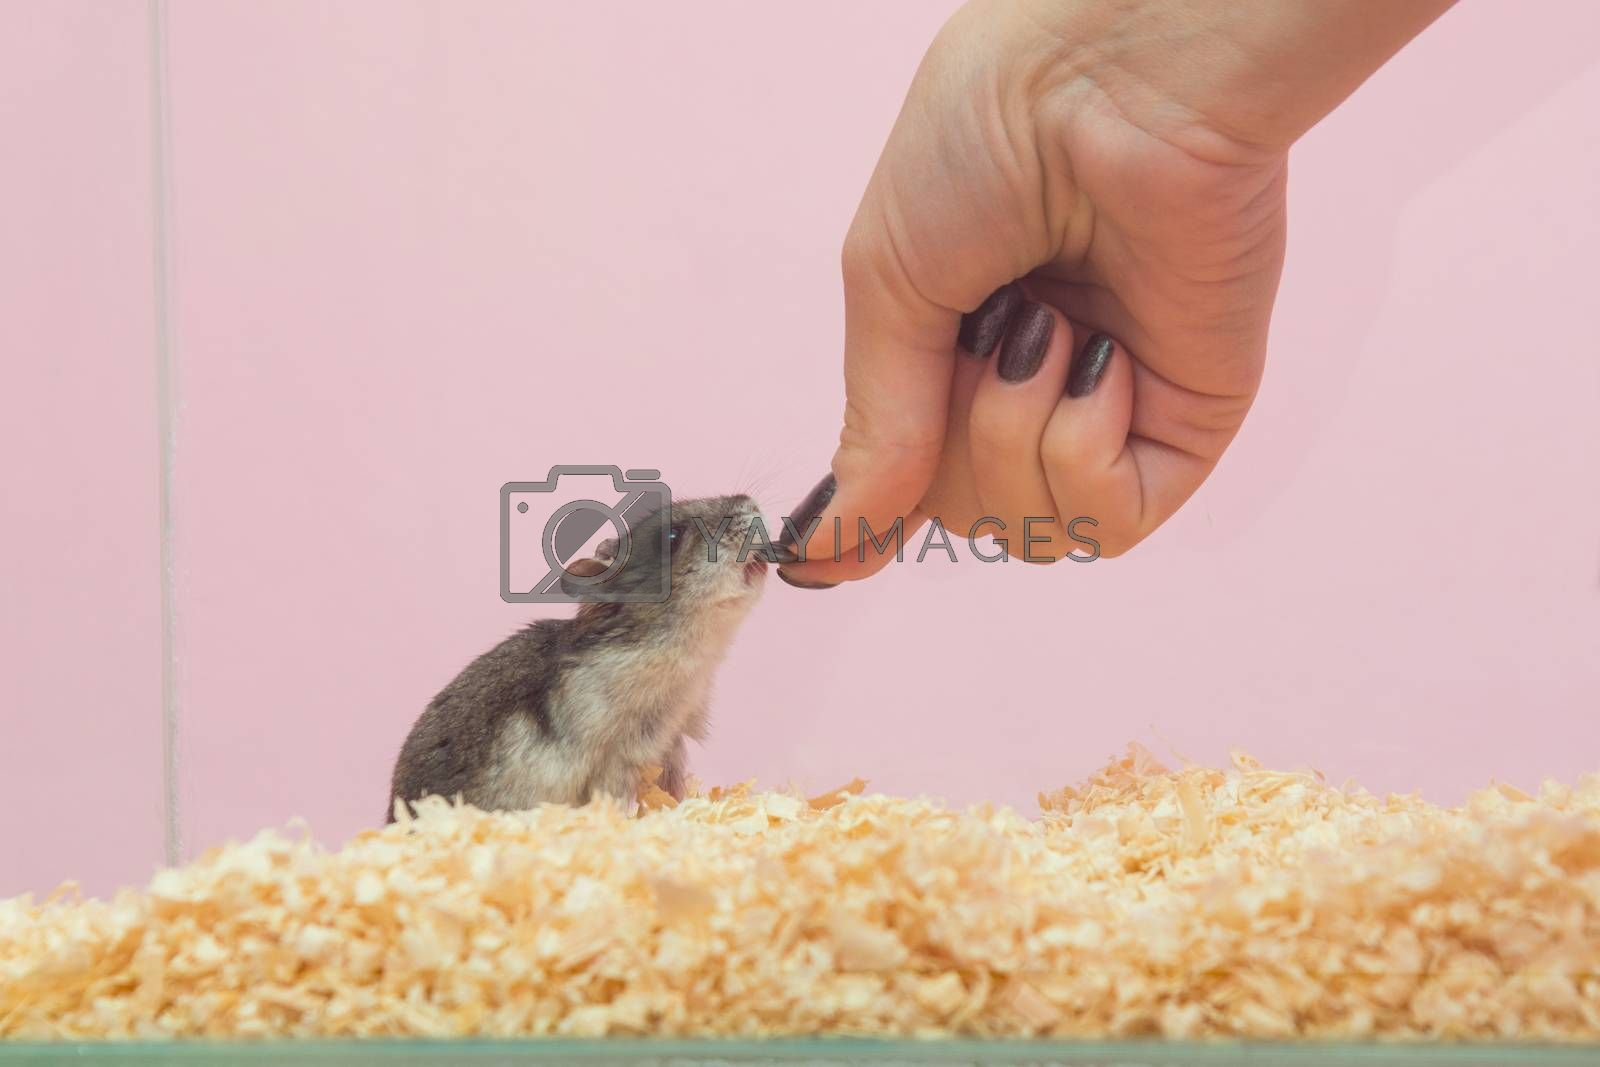 She feeds the hamster seeds, close-up